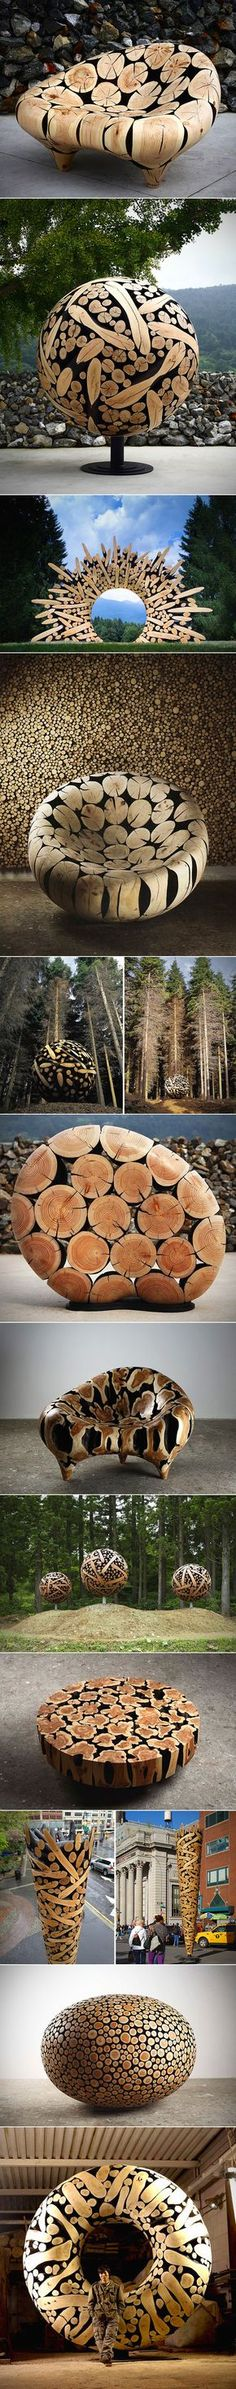 South Korean artist Jae-Hyo Lee turns discarded pieces of wood into incredible sleek sculptures. Having assembled various chunks of wood, he burns and then carefully polishes them to create visual contrast and a smooth surface.